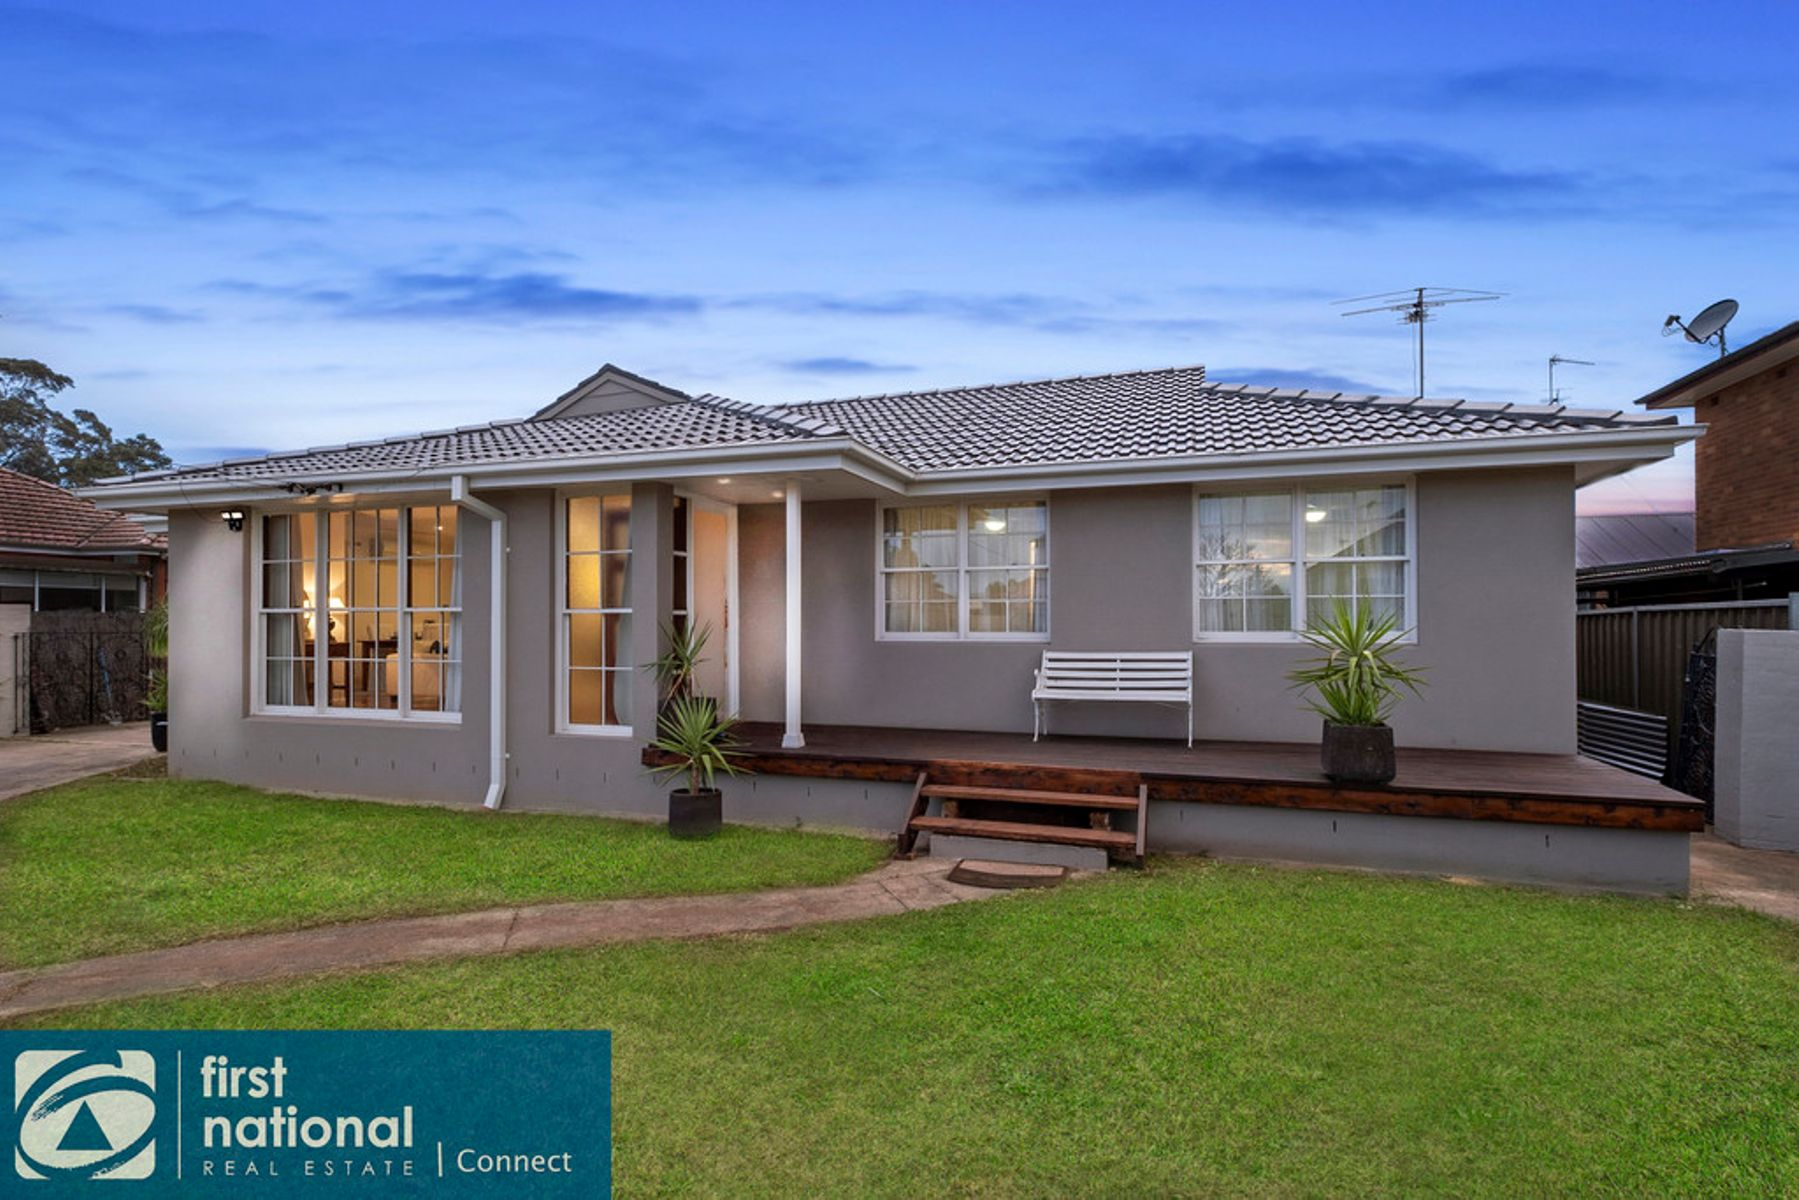 28 Moray St, Richmond NSW 2753, Australia, House for Sale - First